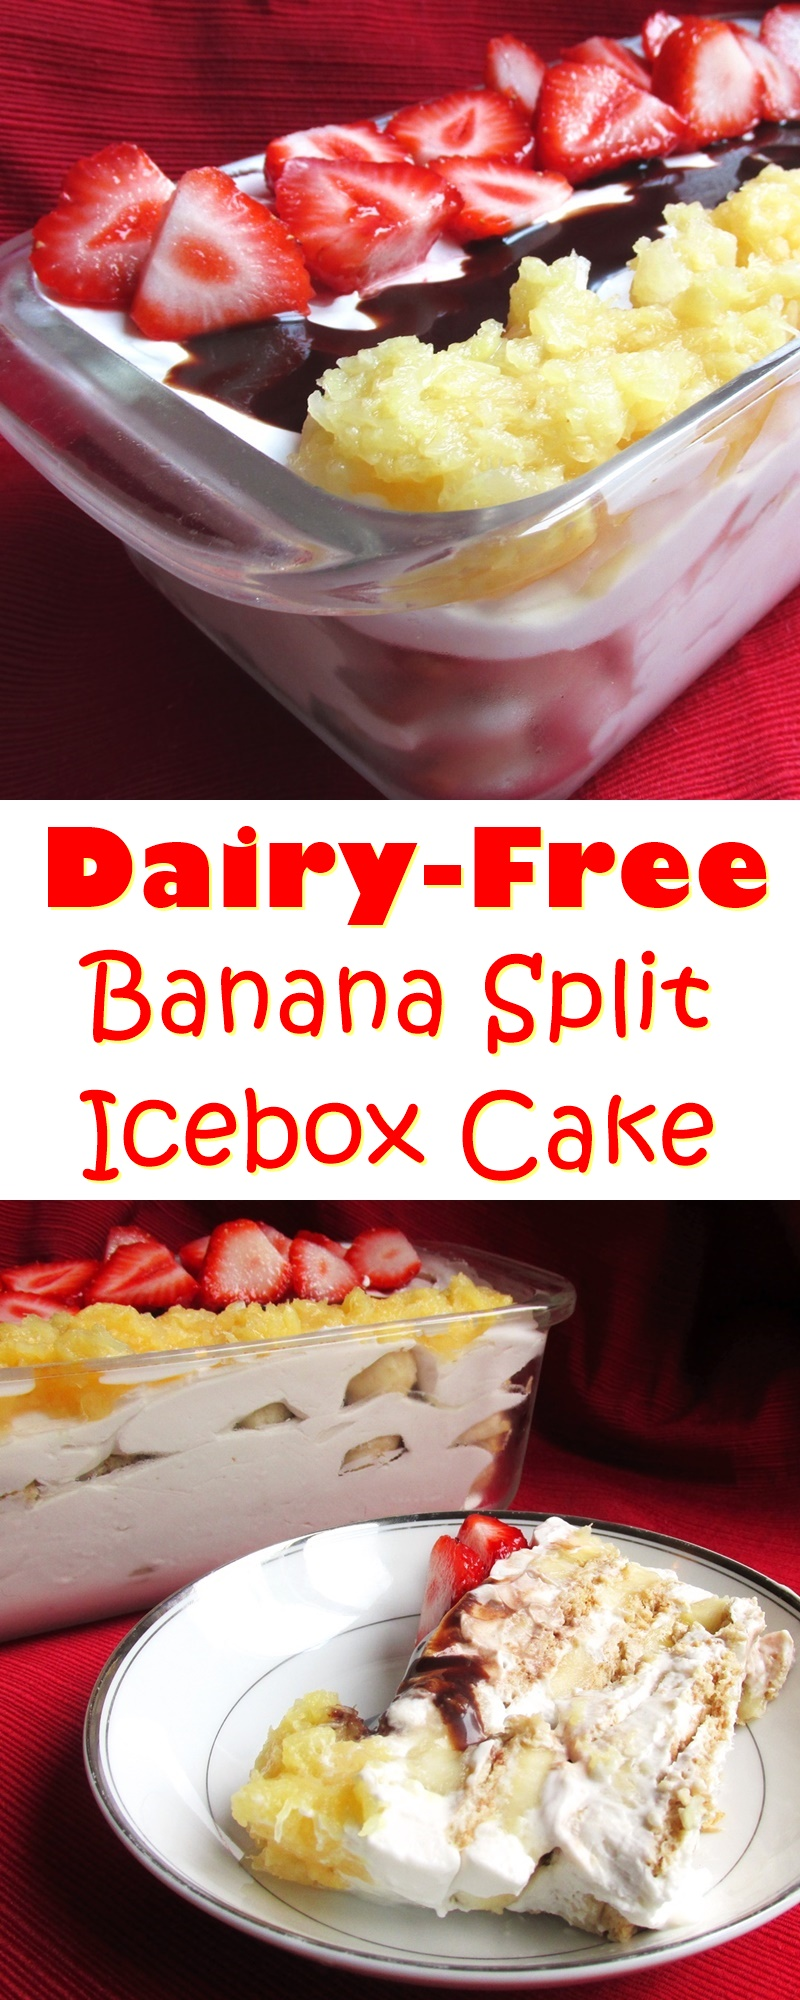 Banana Split Icebox Cake - an easy, no baked, dairy-free dessert recipe with gluten-free & vegan options